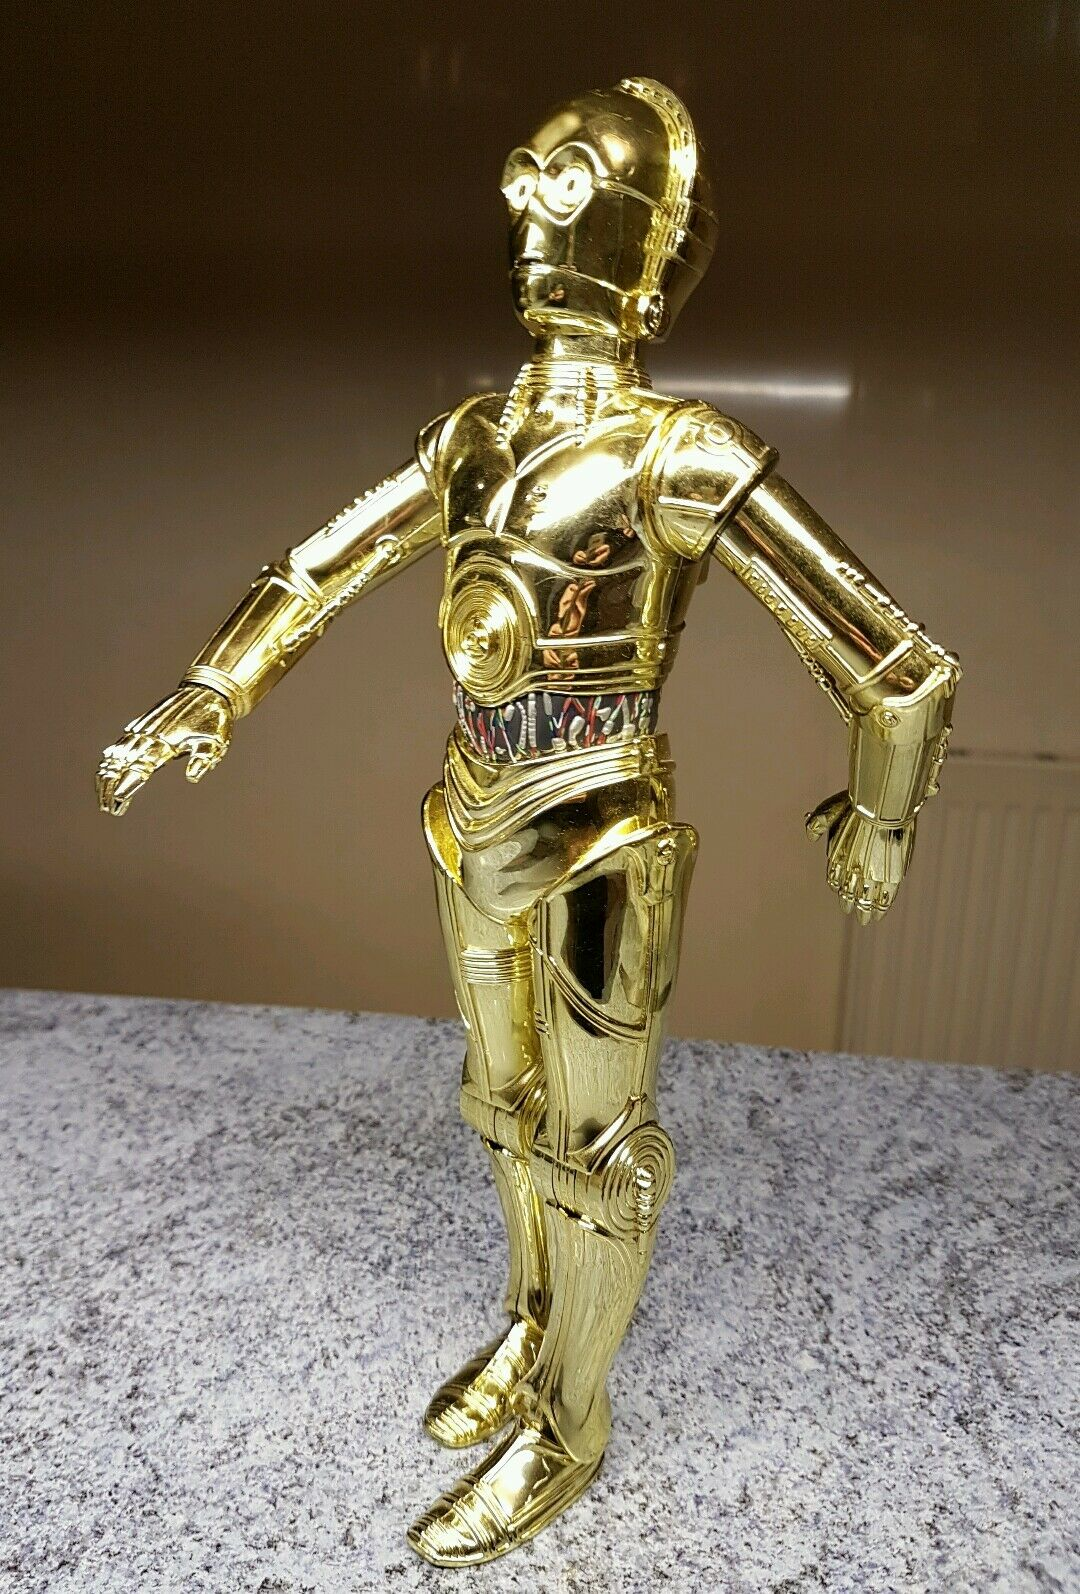 1/6 scale Star Wars C3P0 ( C-3PO ) 12 inch scale figure Power of the Force